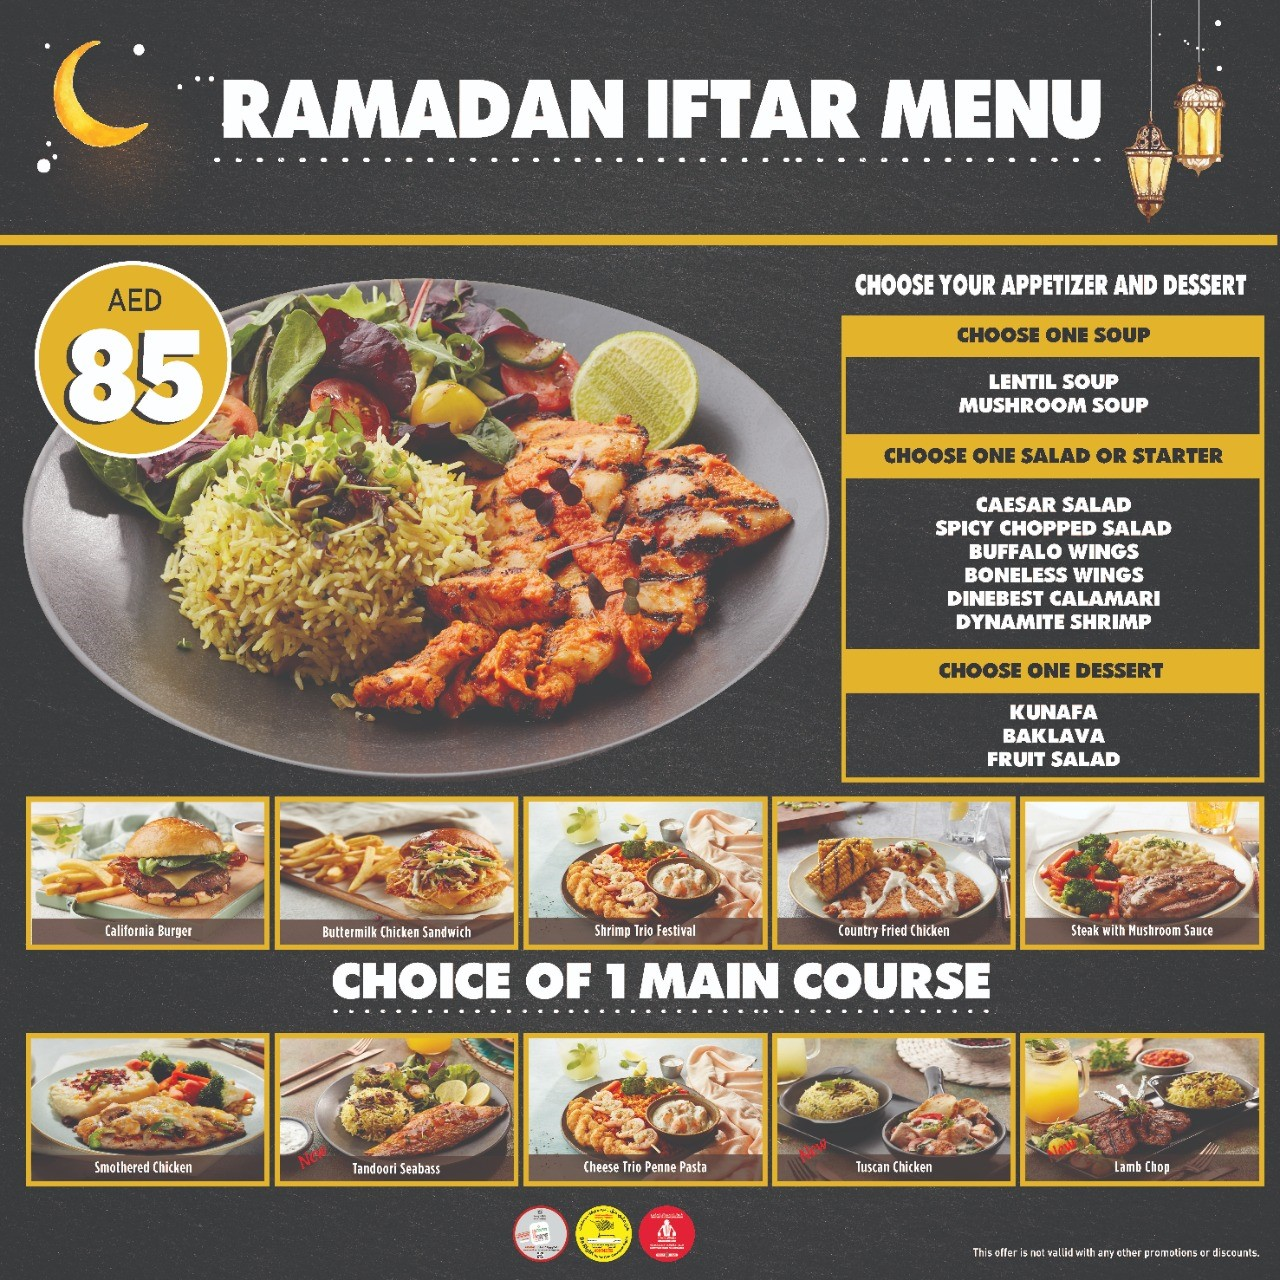 Ramadan Iftar Menu Offer at DineBest